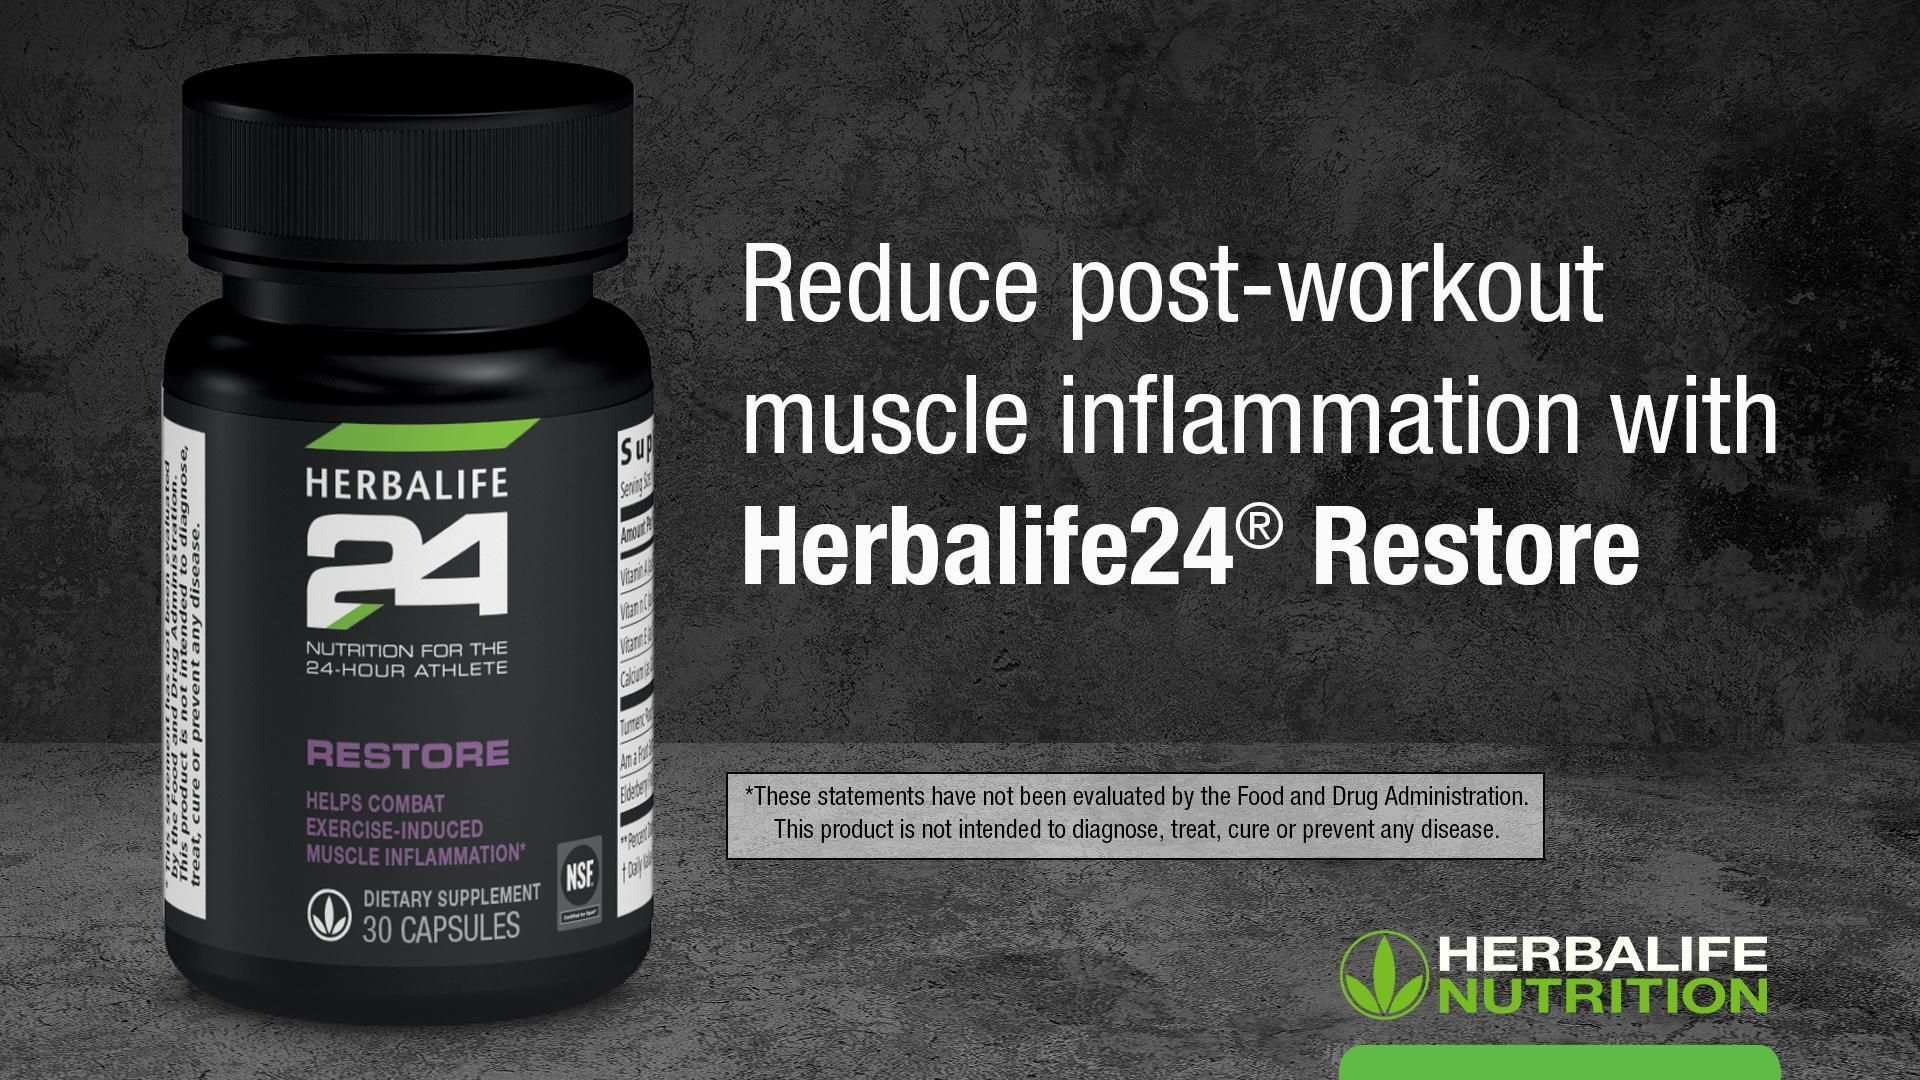 Herbalife24® Restore: Know the Products